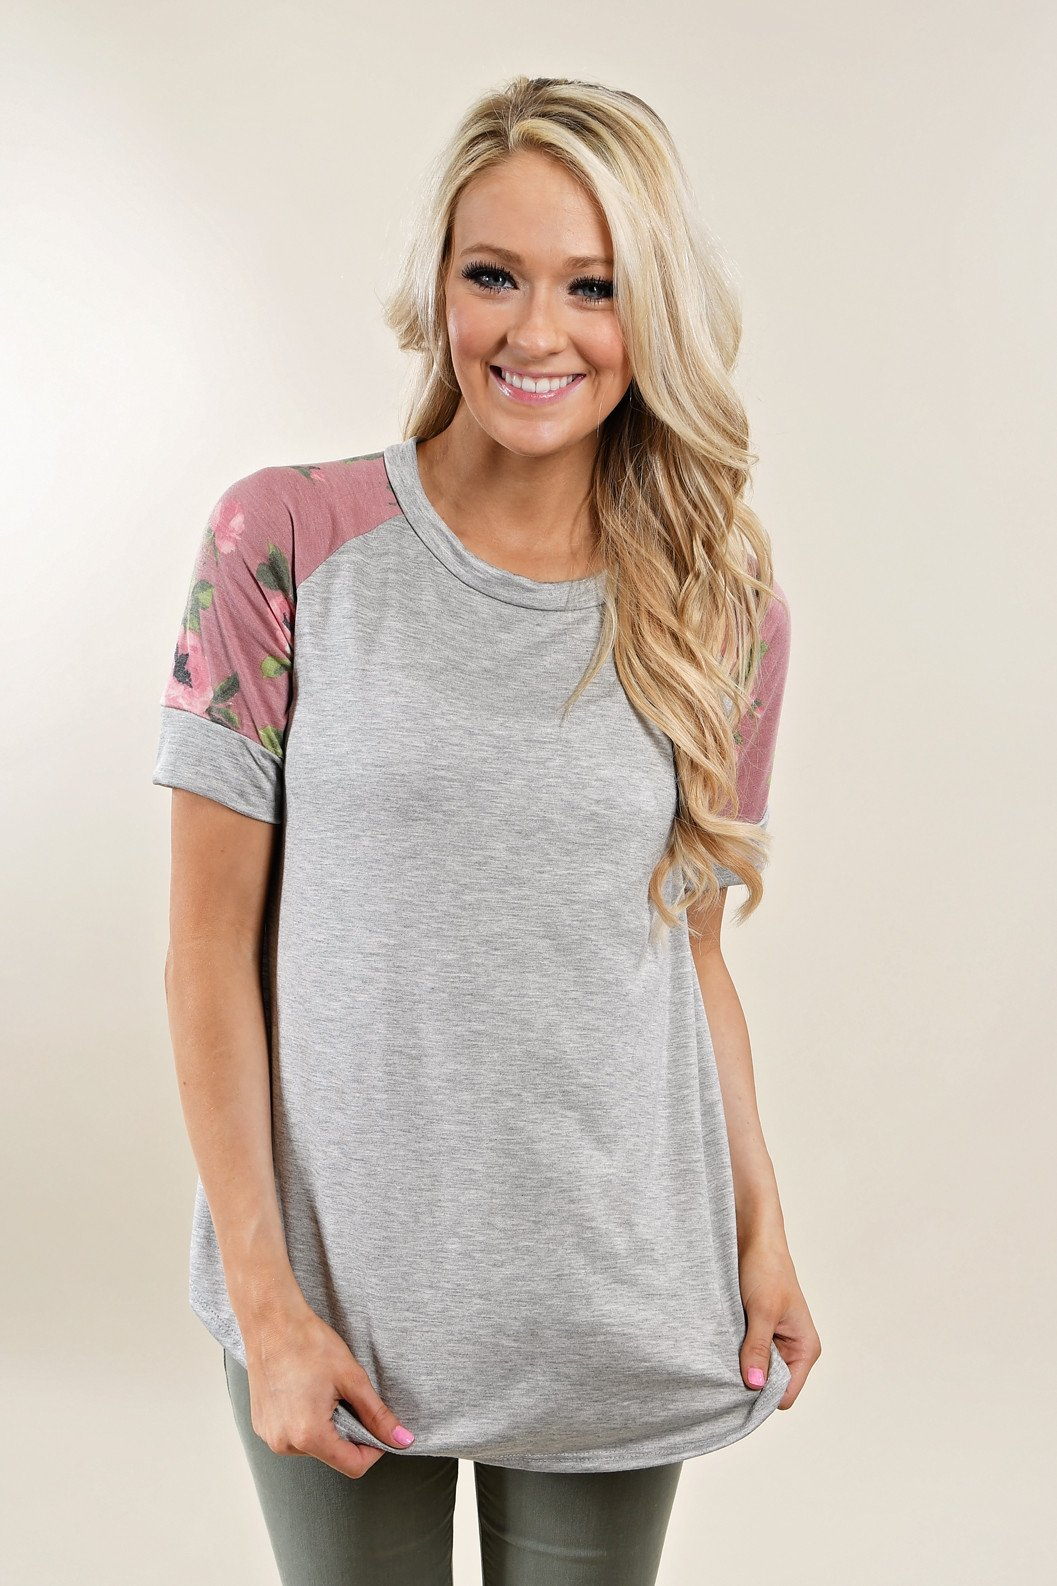 Sweet Pea Pink Floral Sleeve Top ~ Heather Grey